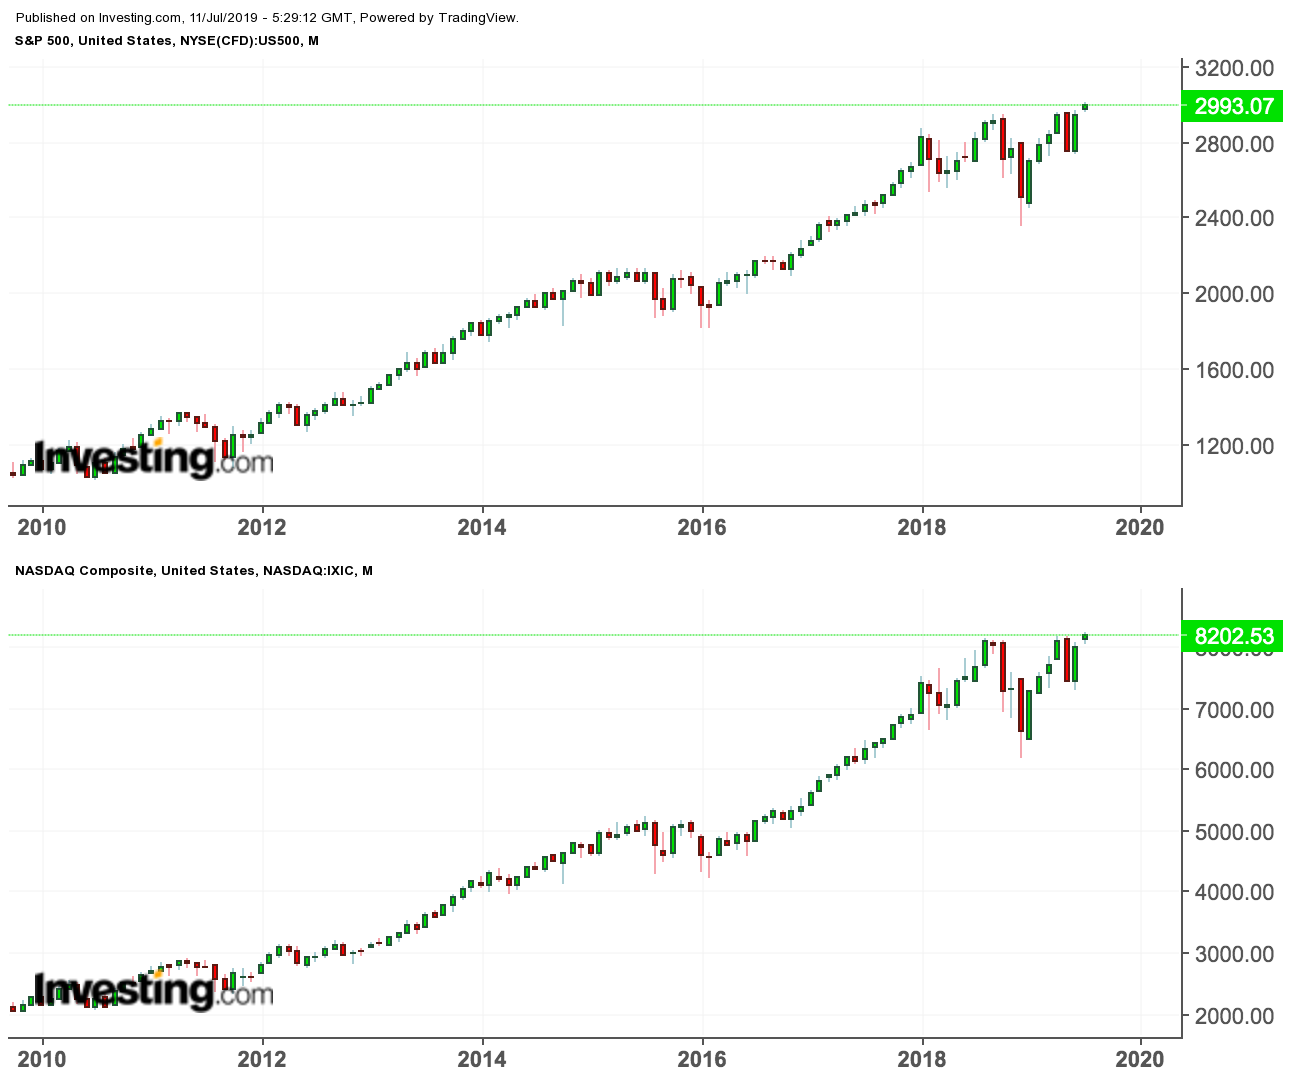 S&P500, NASDAQ Composite closed at record highs yesterday